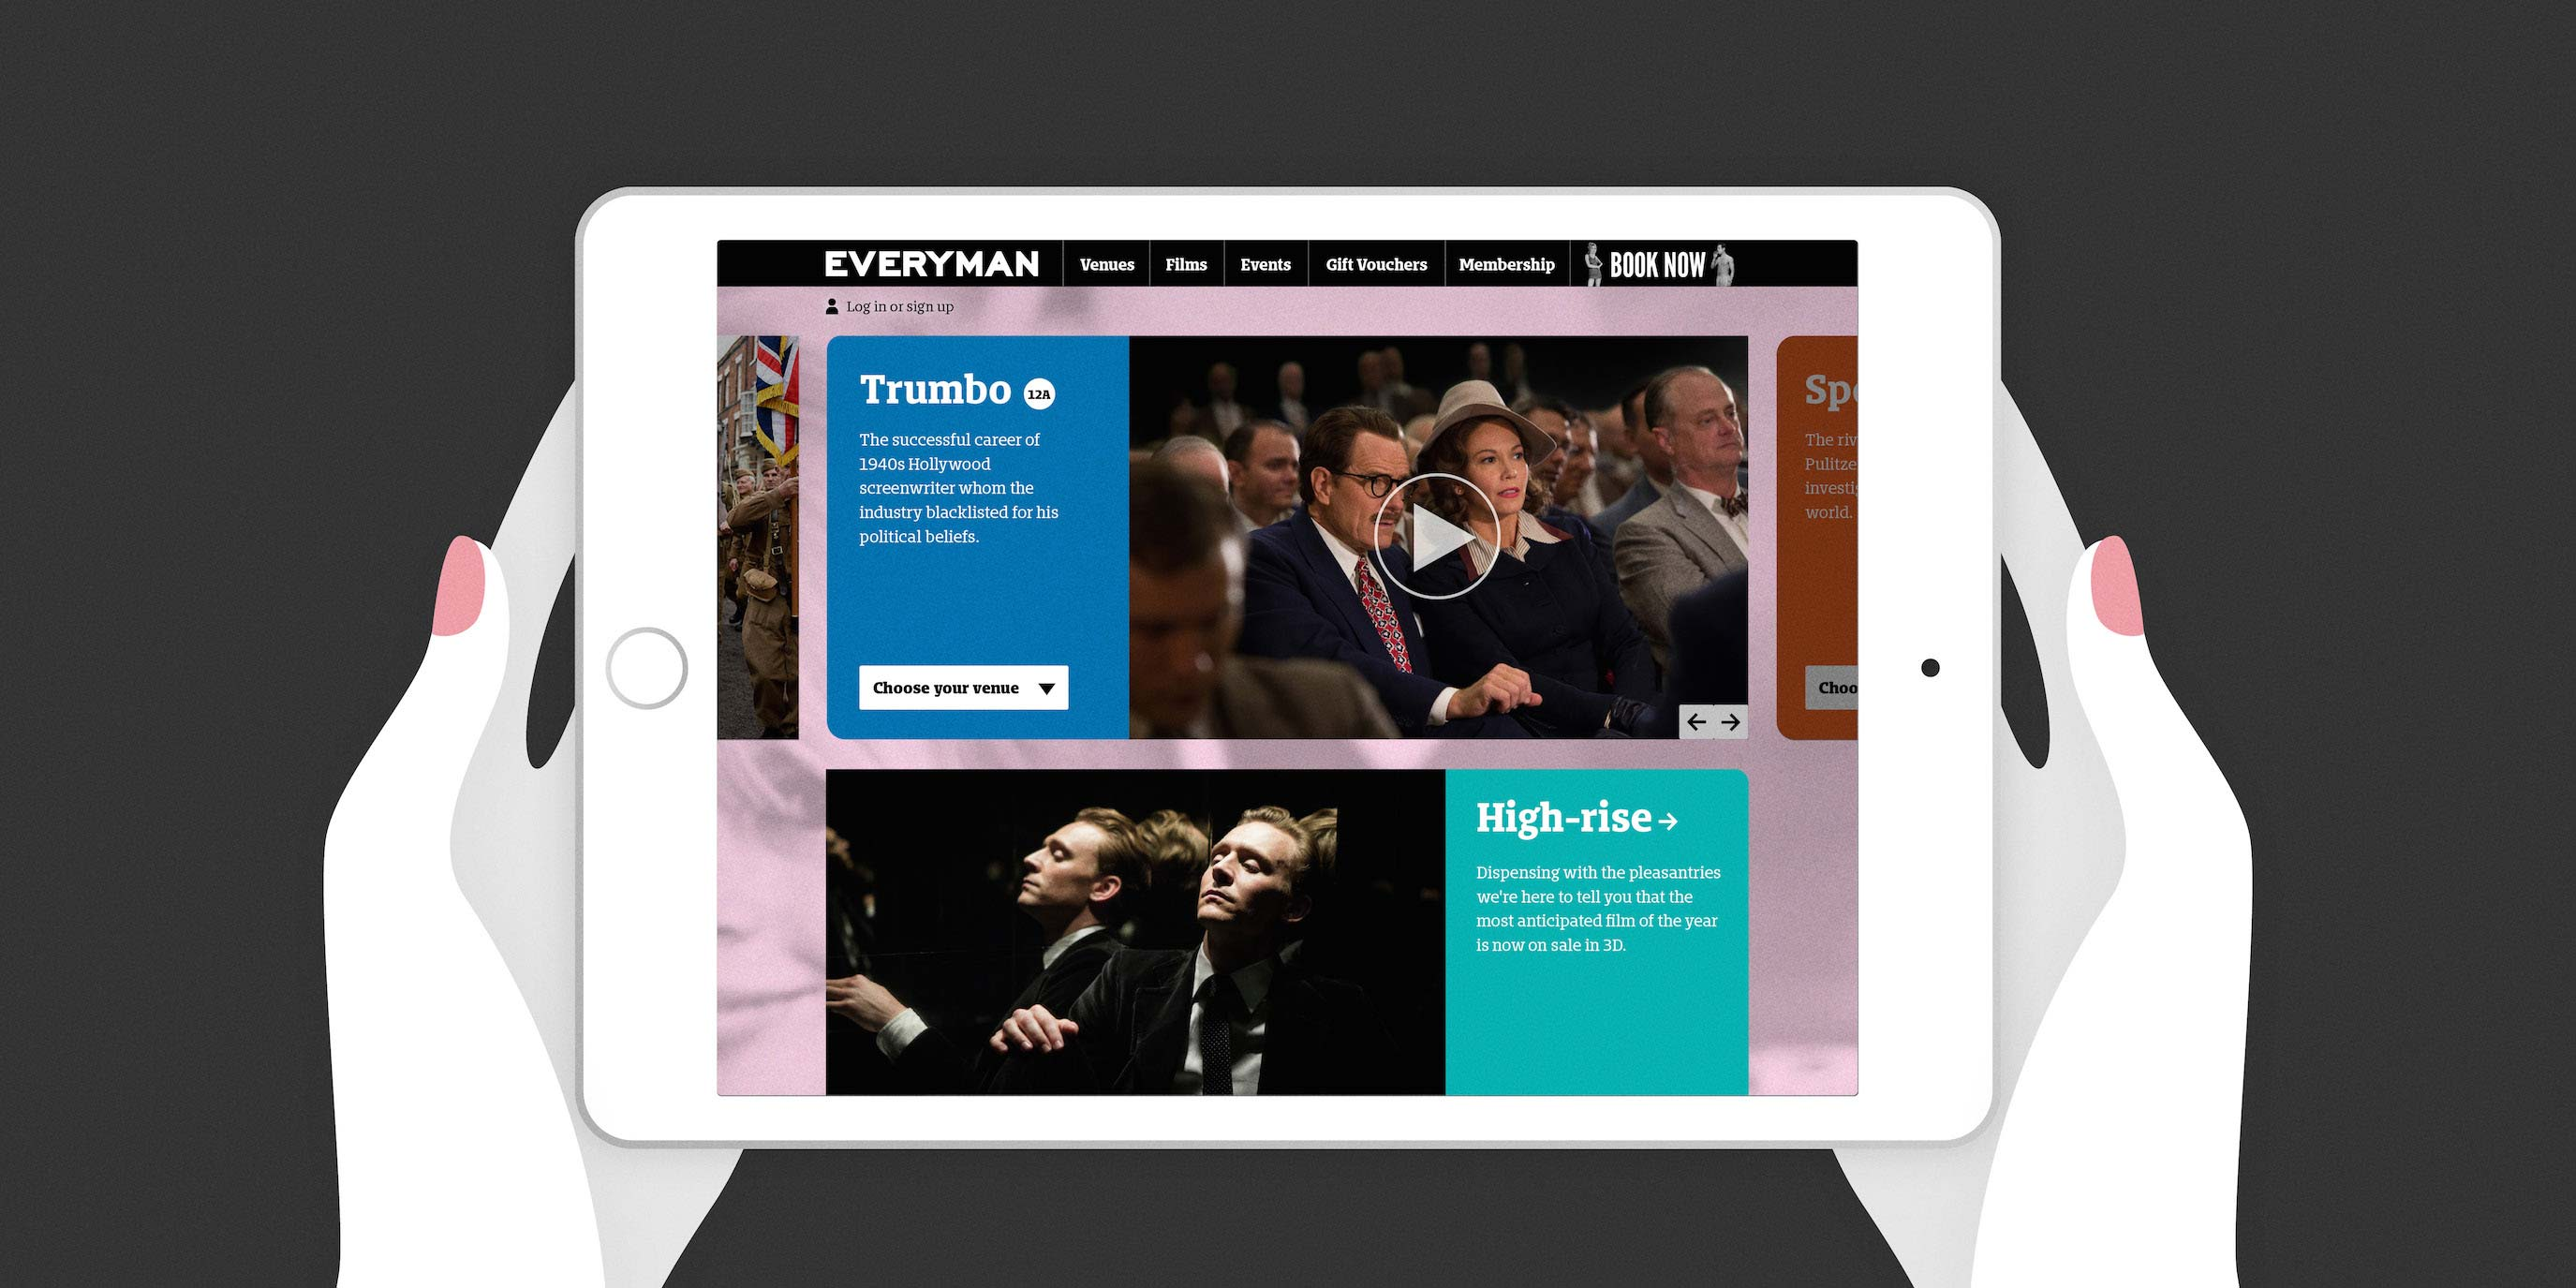 Everyman Cinema website design by Human After All design agency